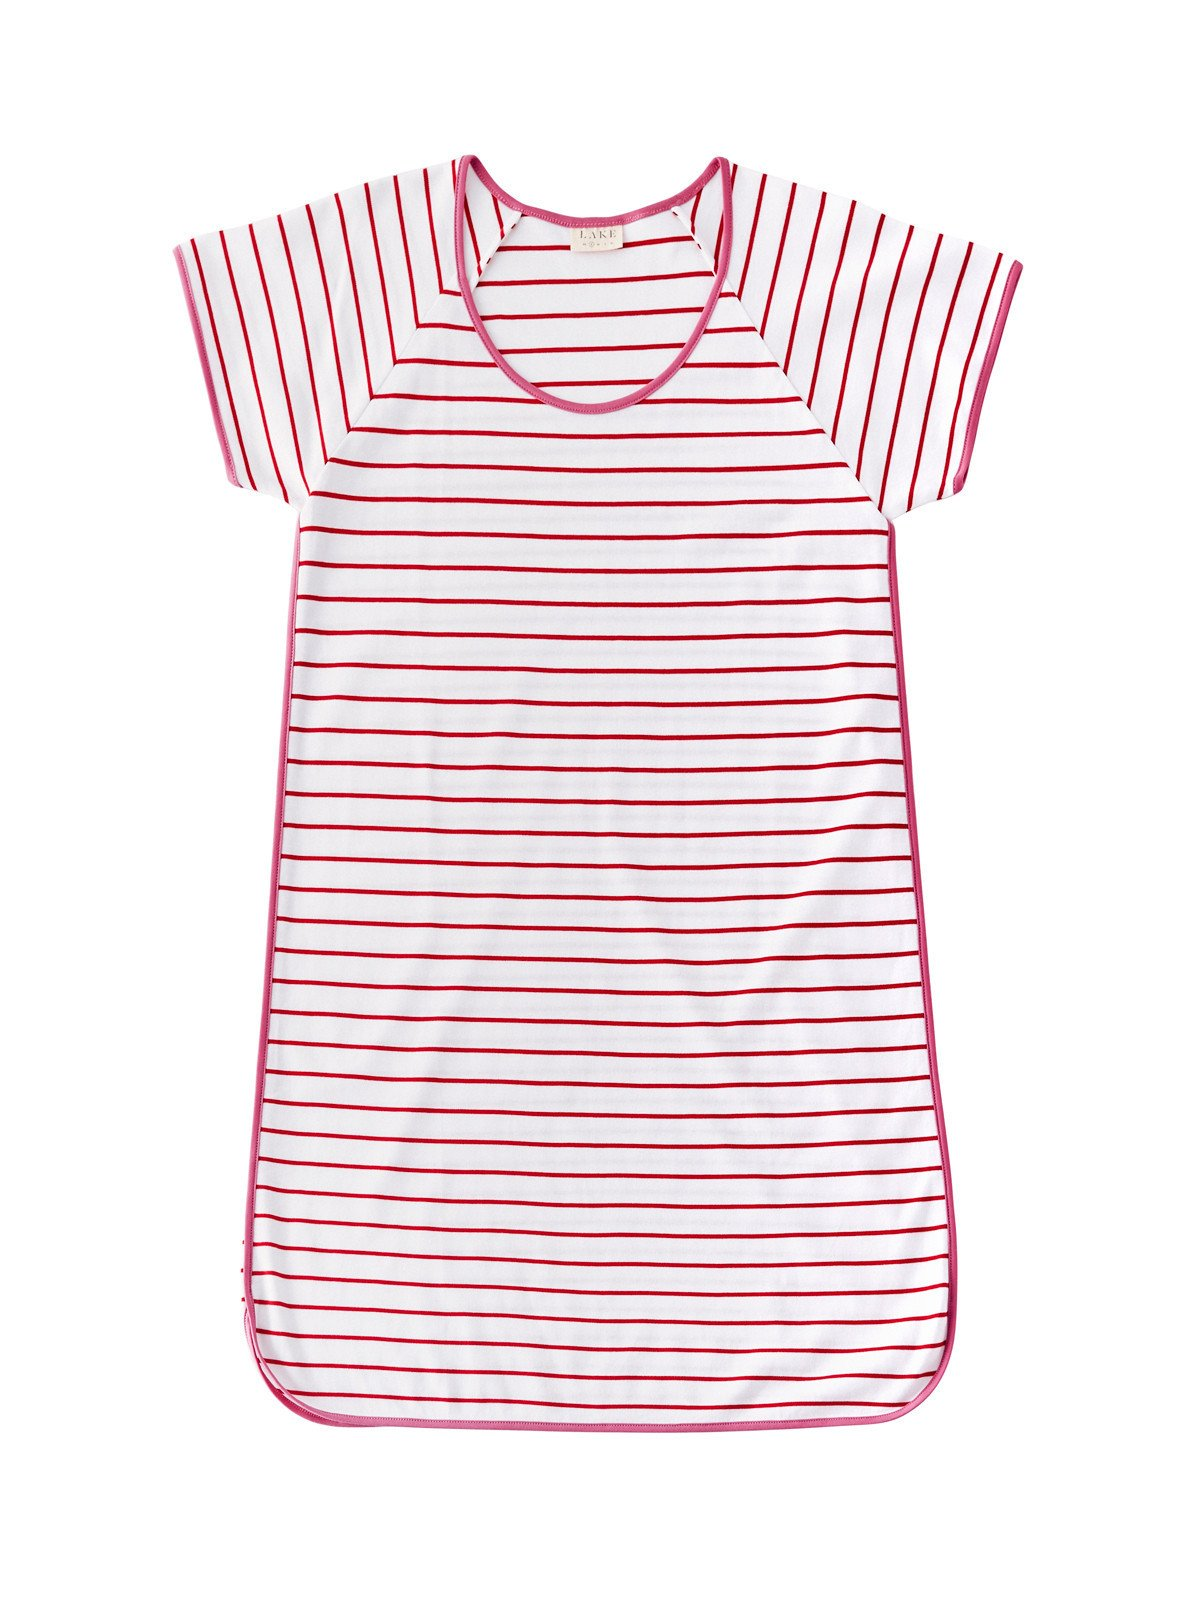 LAKE PAJAMAS BERRY NIGHTGOWN - $74   A Personal Favorite - These Classic Striped Pajamas come in all colors & styles.